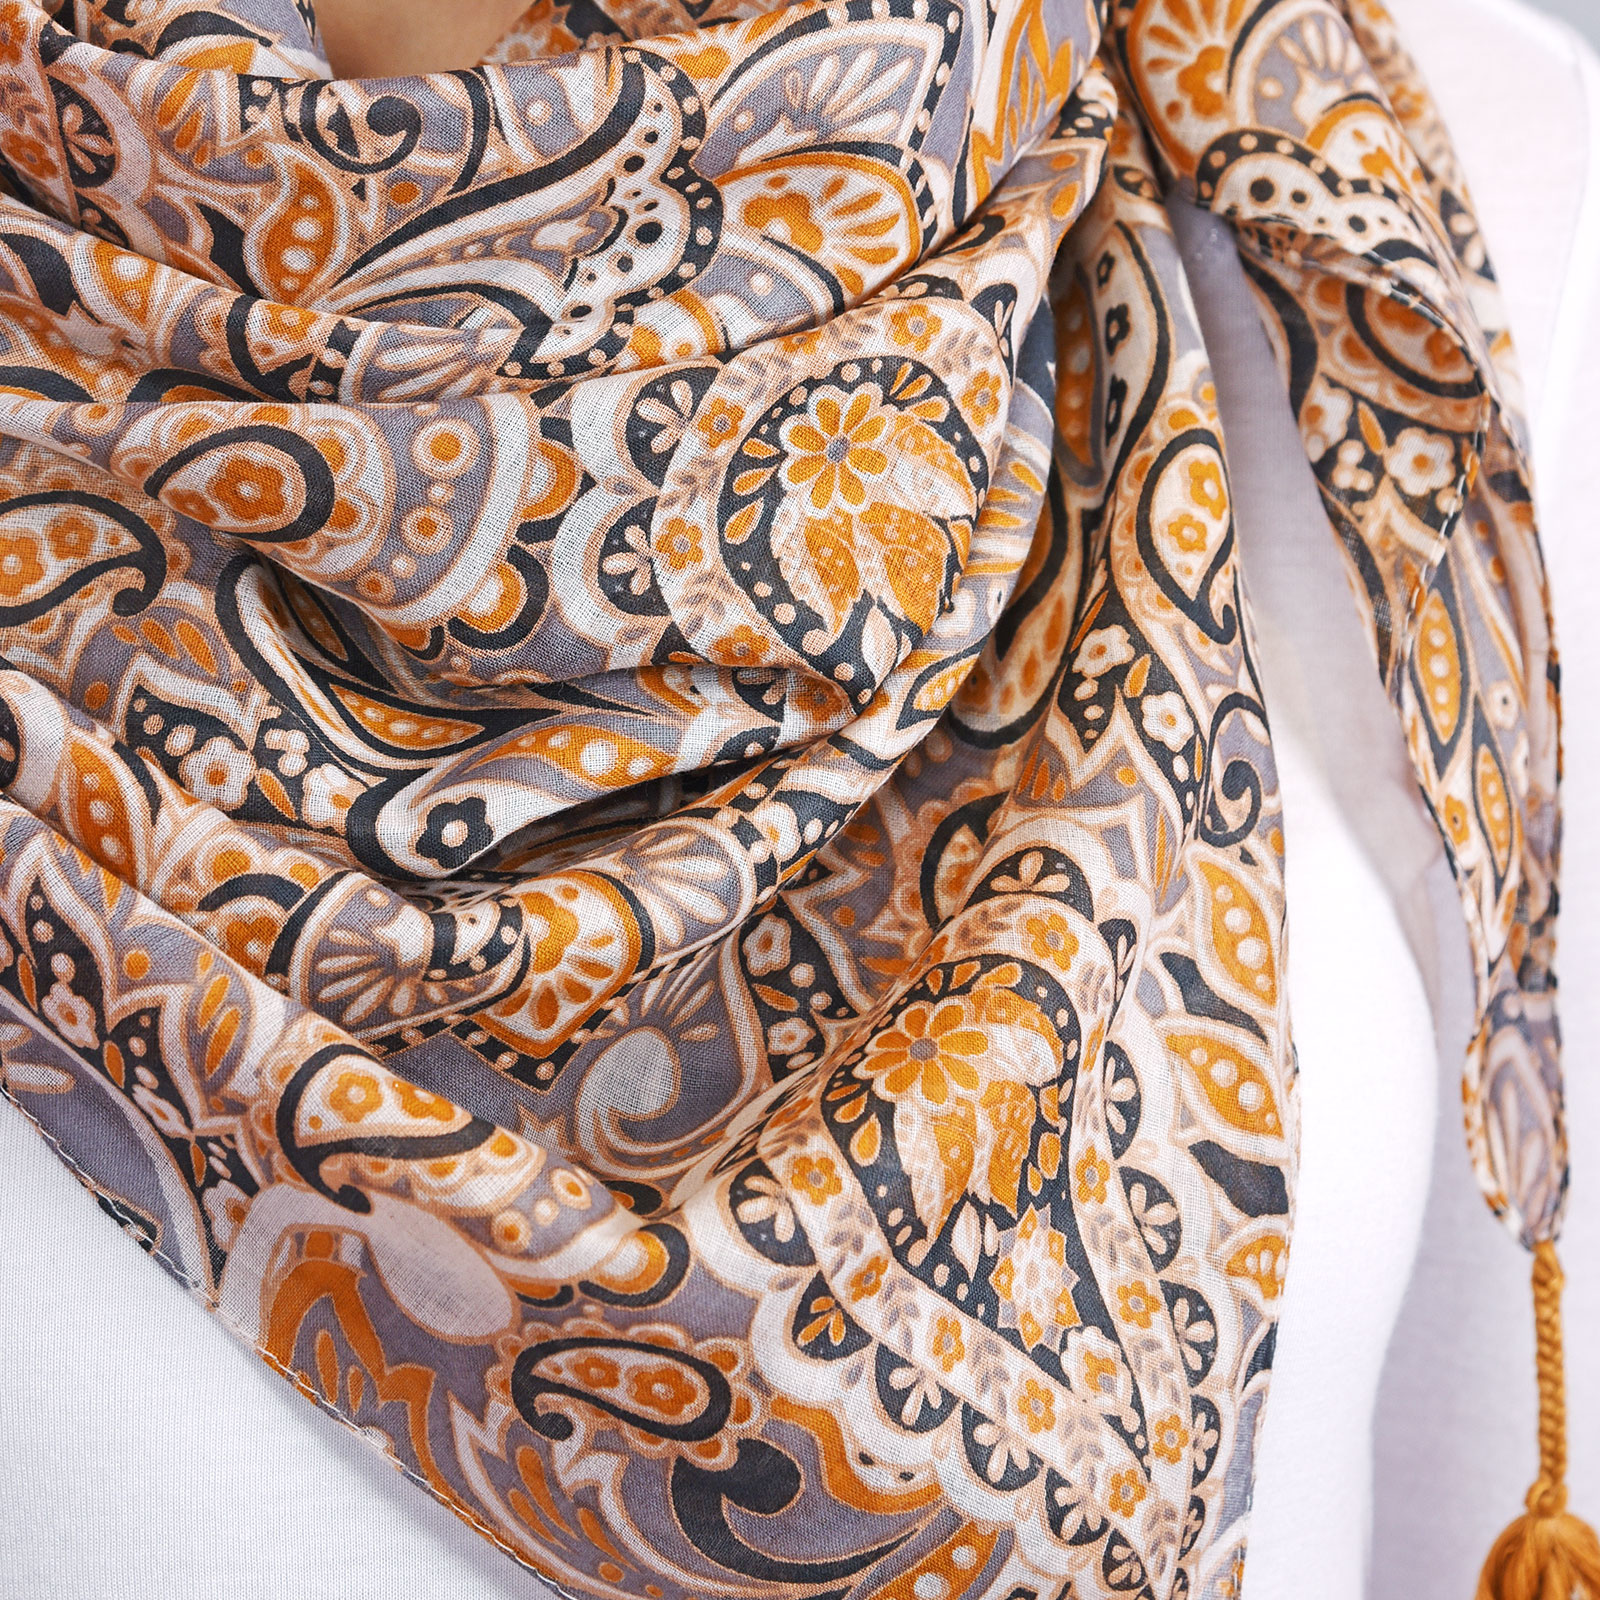 AT-04314-VF16-3-foulard-fantaisie-cachemire-moutarde